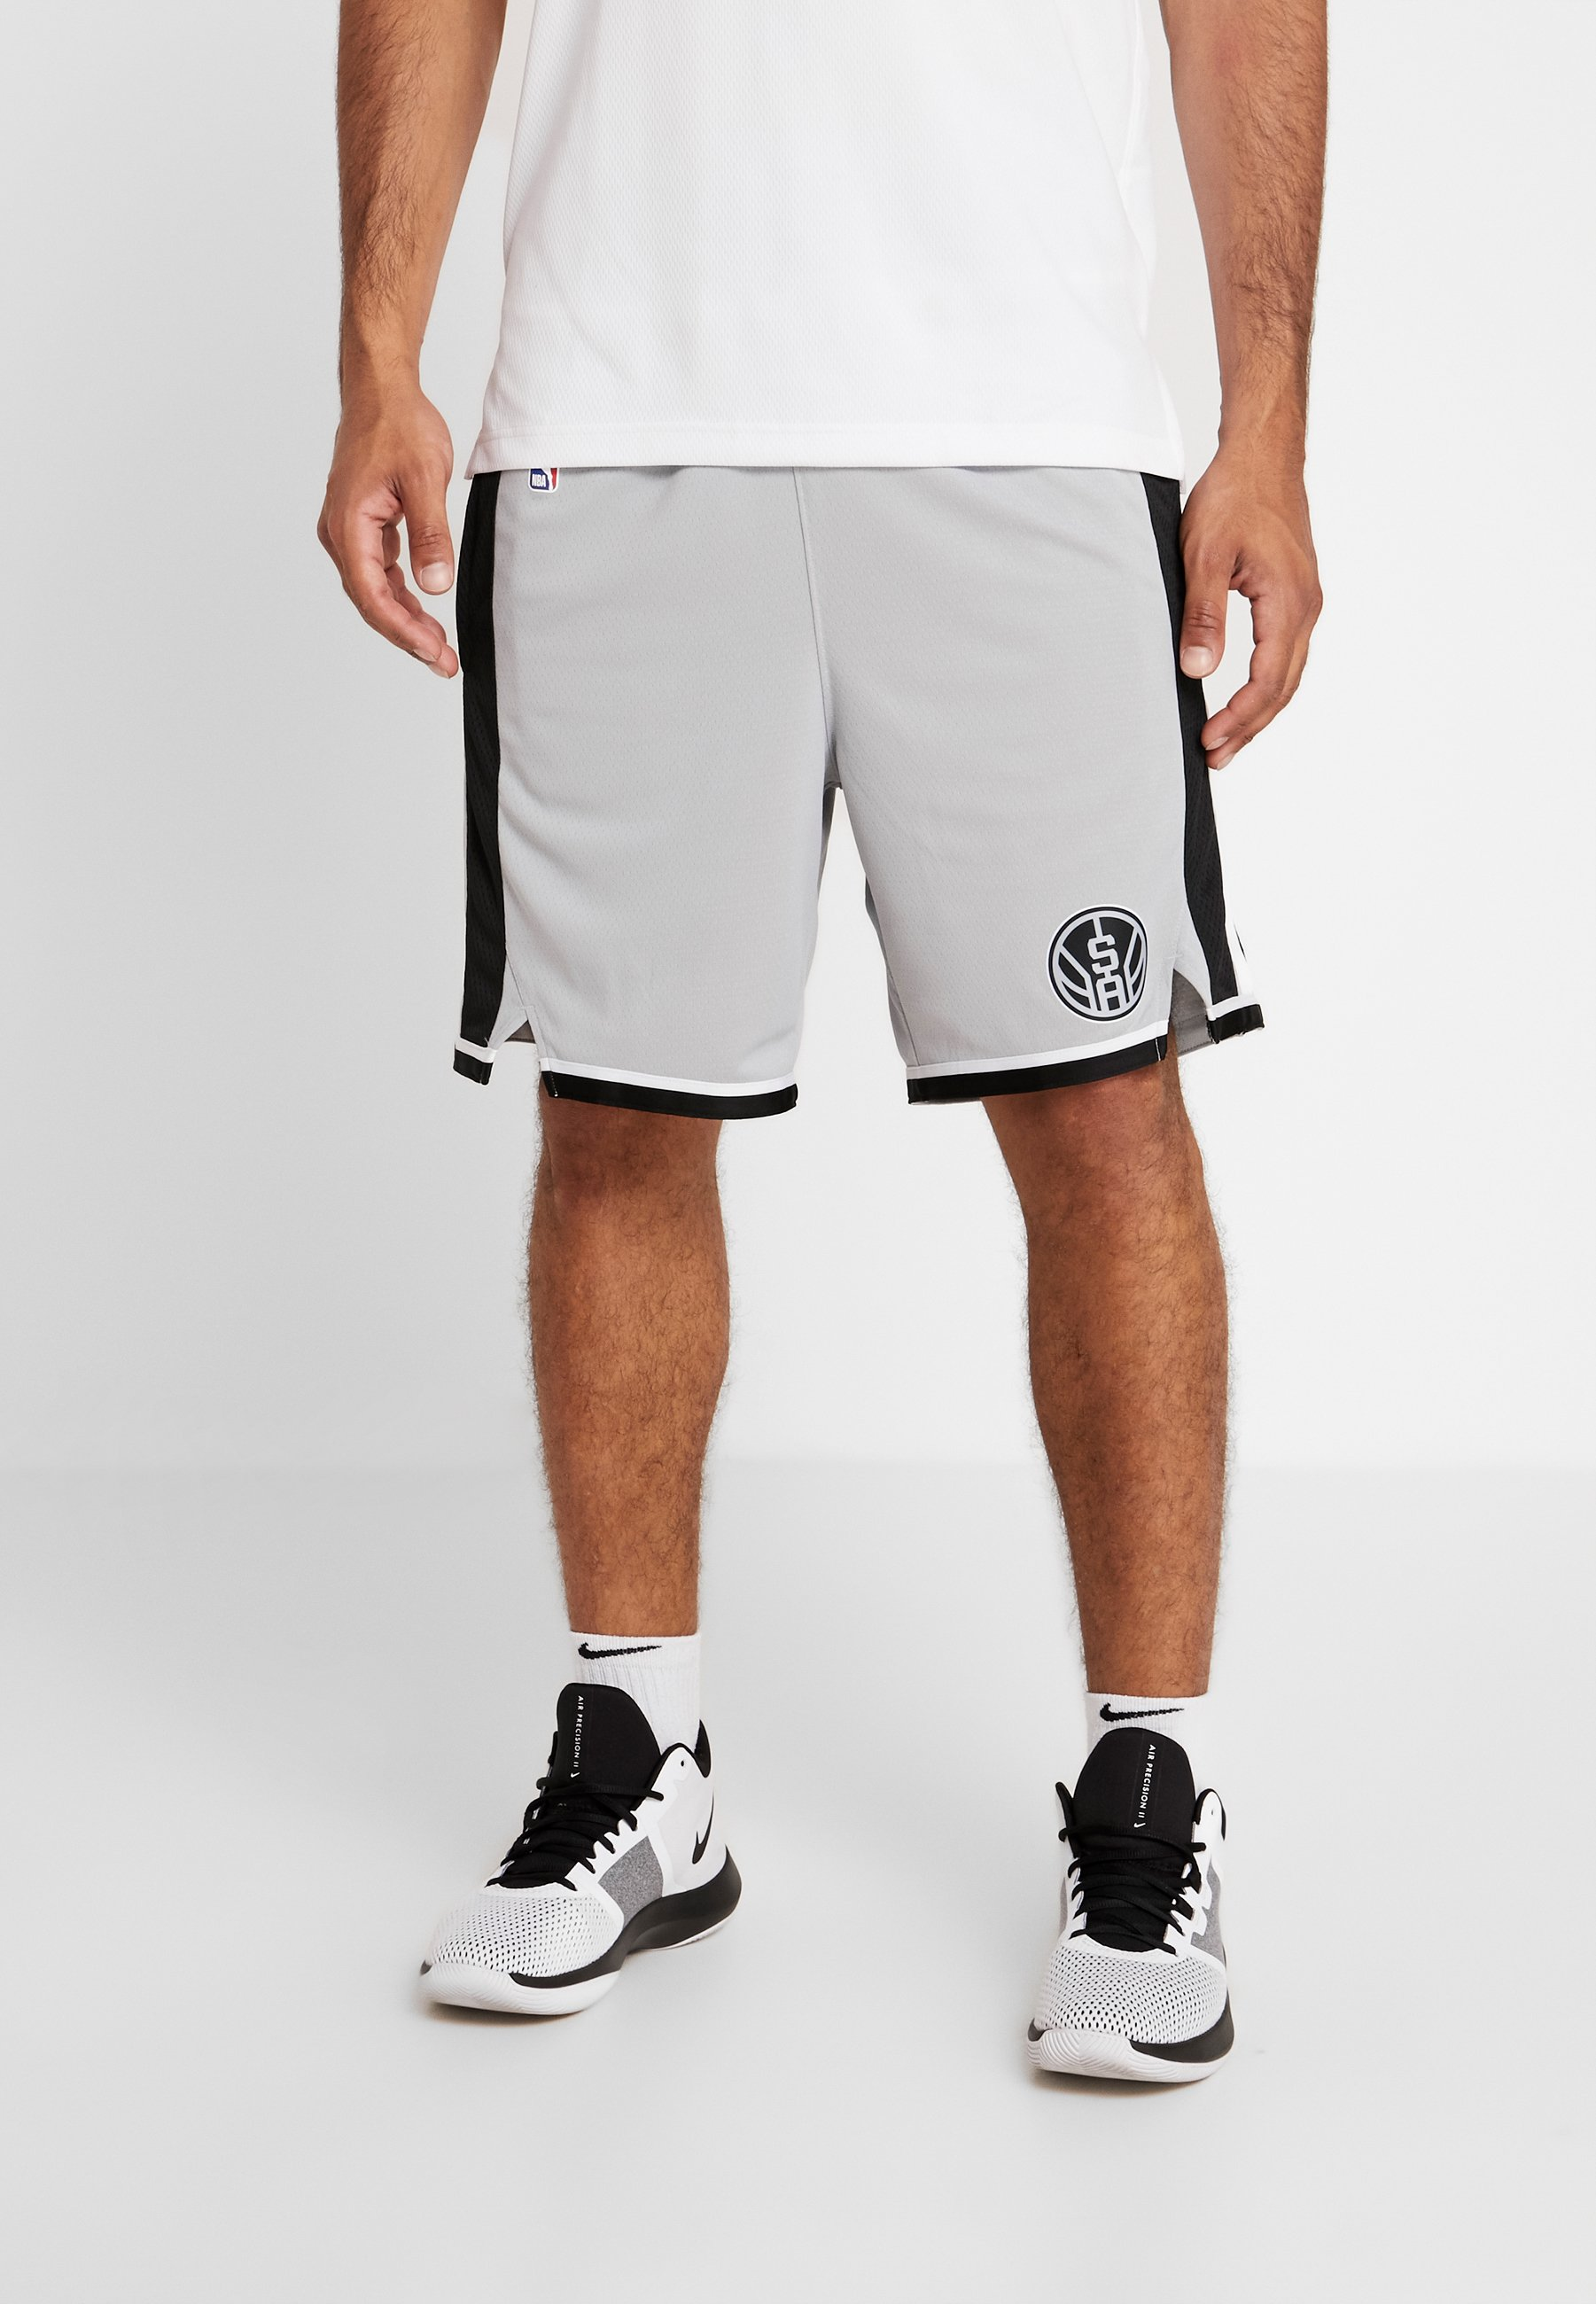 SwingmanShort Nike Performance Antonio De Black Sport San white Nba Spurs bf6y7g